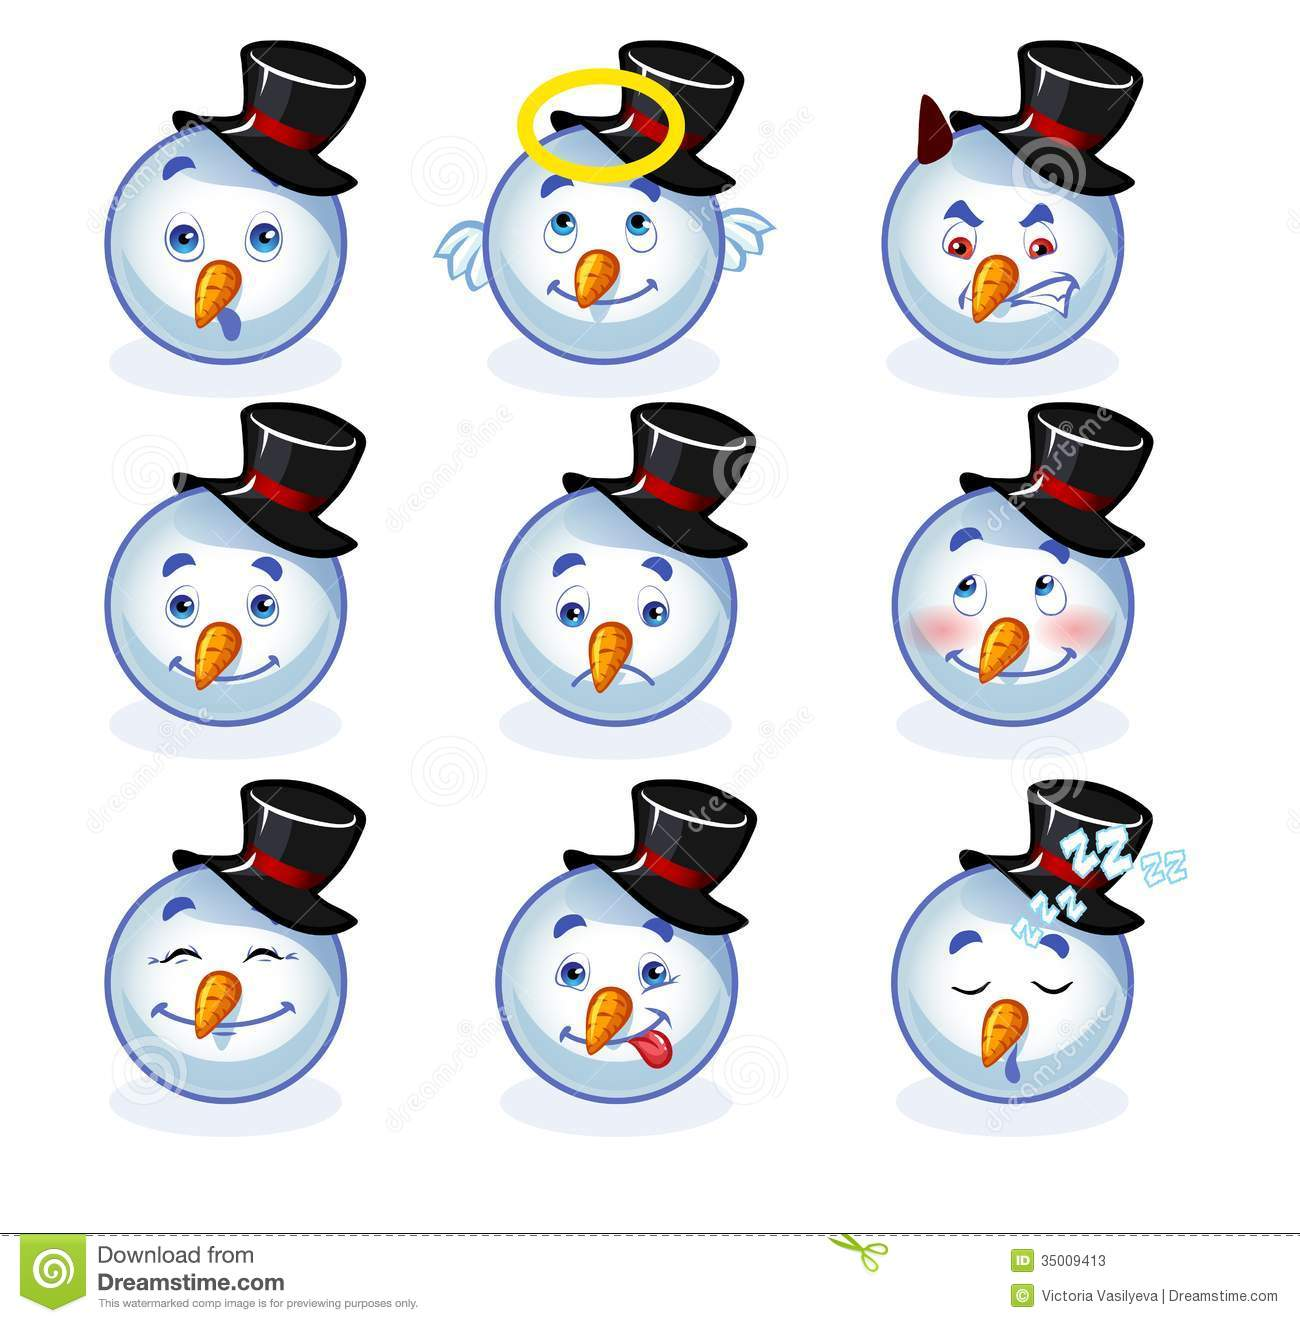 Cool Smiley Face Thumbs Up Smileys snowman stock ...